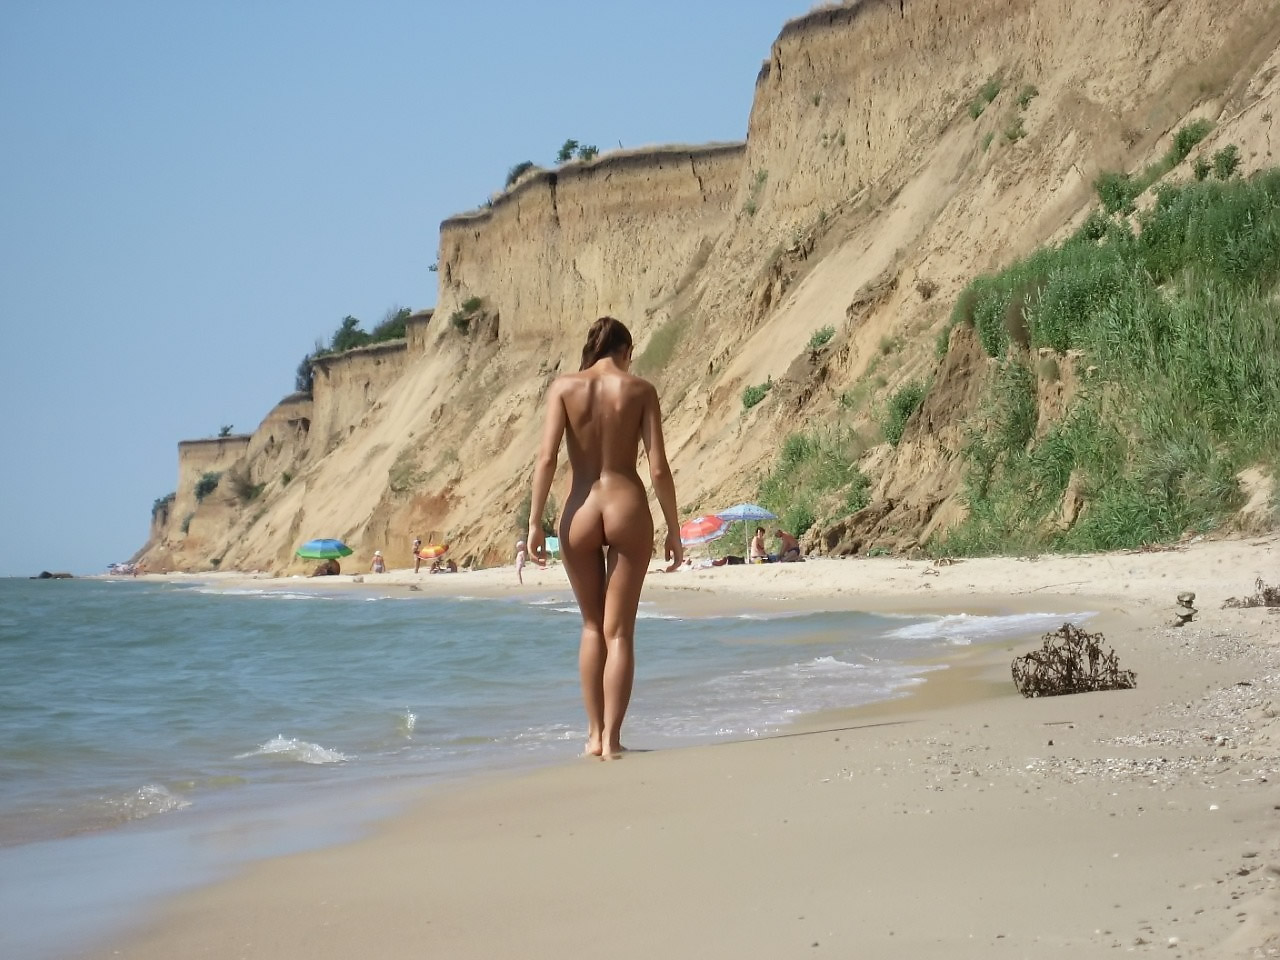 Nudist Beaches And Hotels In Greece